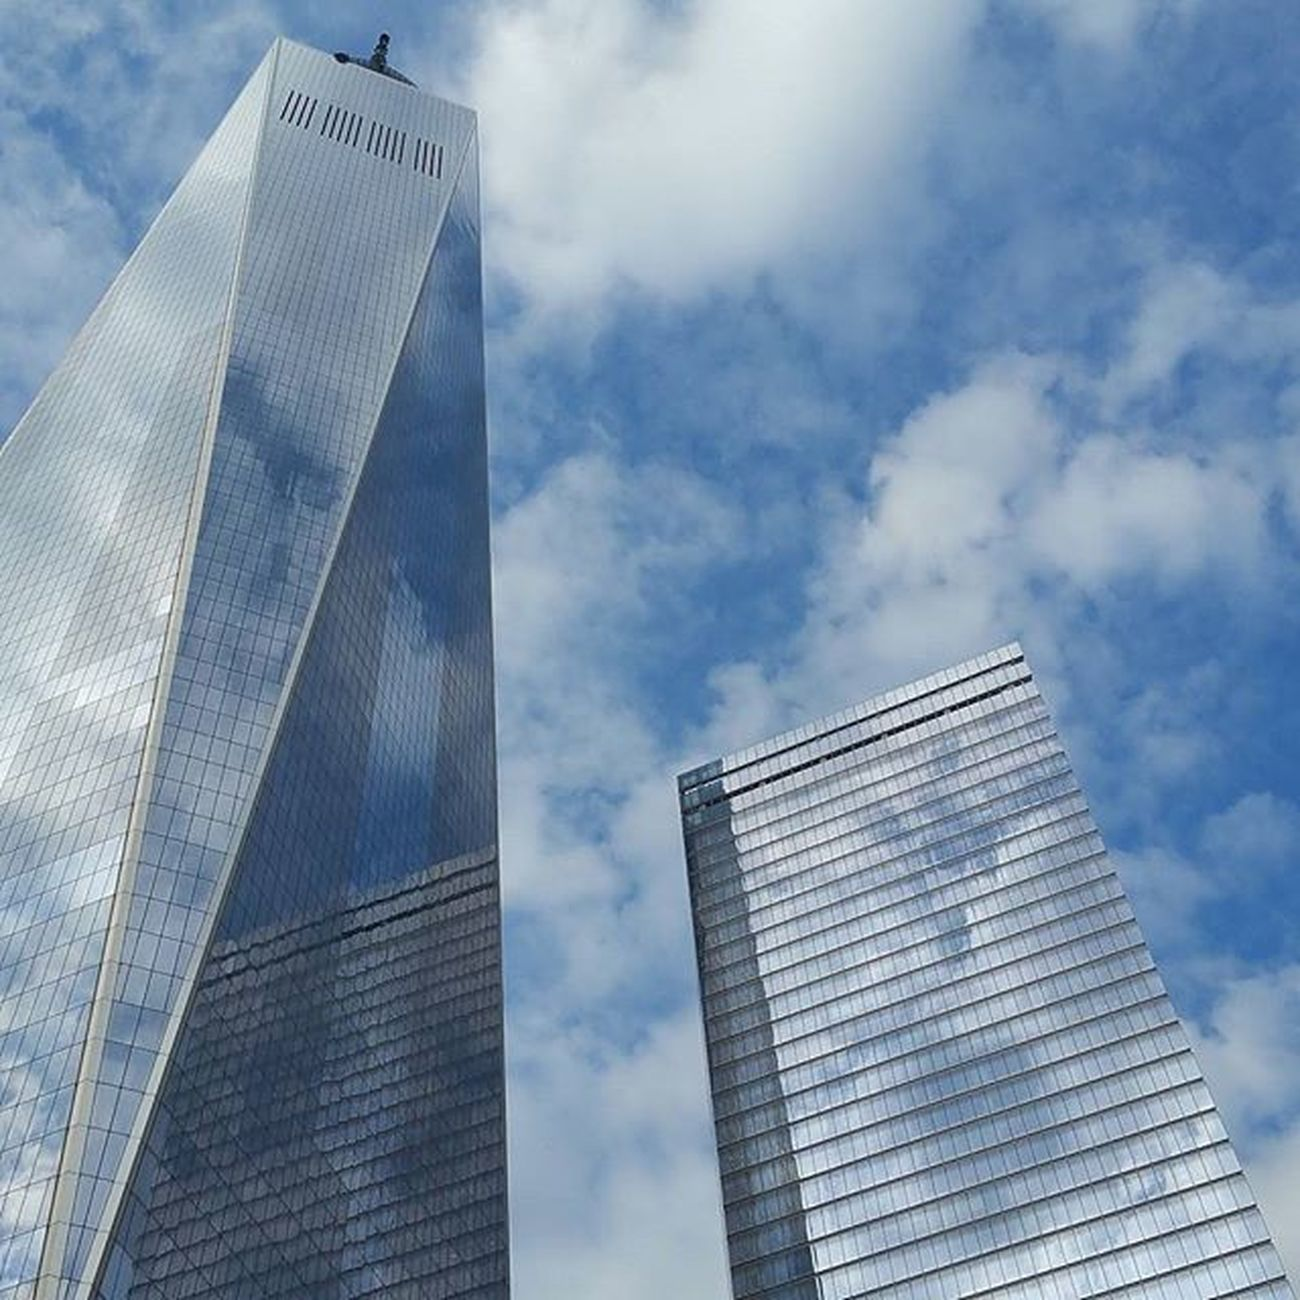 The Spire. ▫ Reflectiongram Moodygrams Urbangathering Reflection Agameoftones Manhattan Nycprimeshot Newyorkcity Imaginatones Downtown WTC Beautiful Architecture Buildings Imagine Create Inspire Photo Clouds Sky Clear Blue Resilience  Strength GroundZero